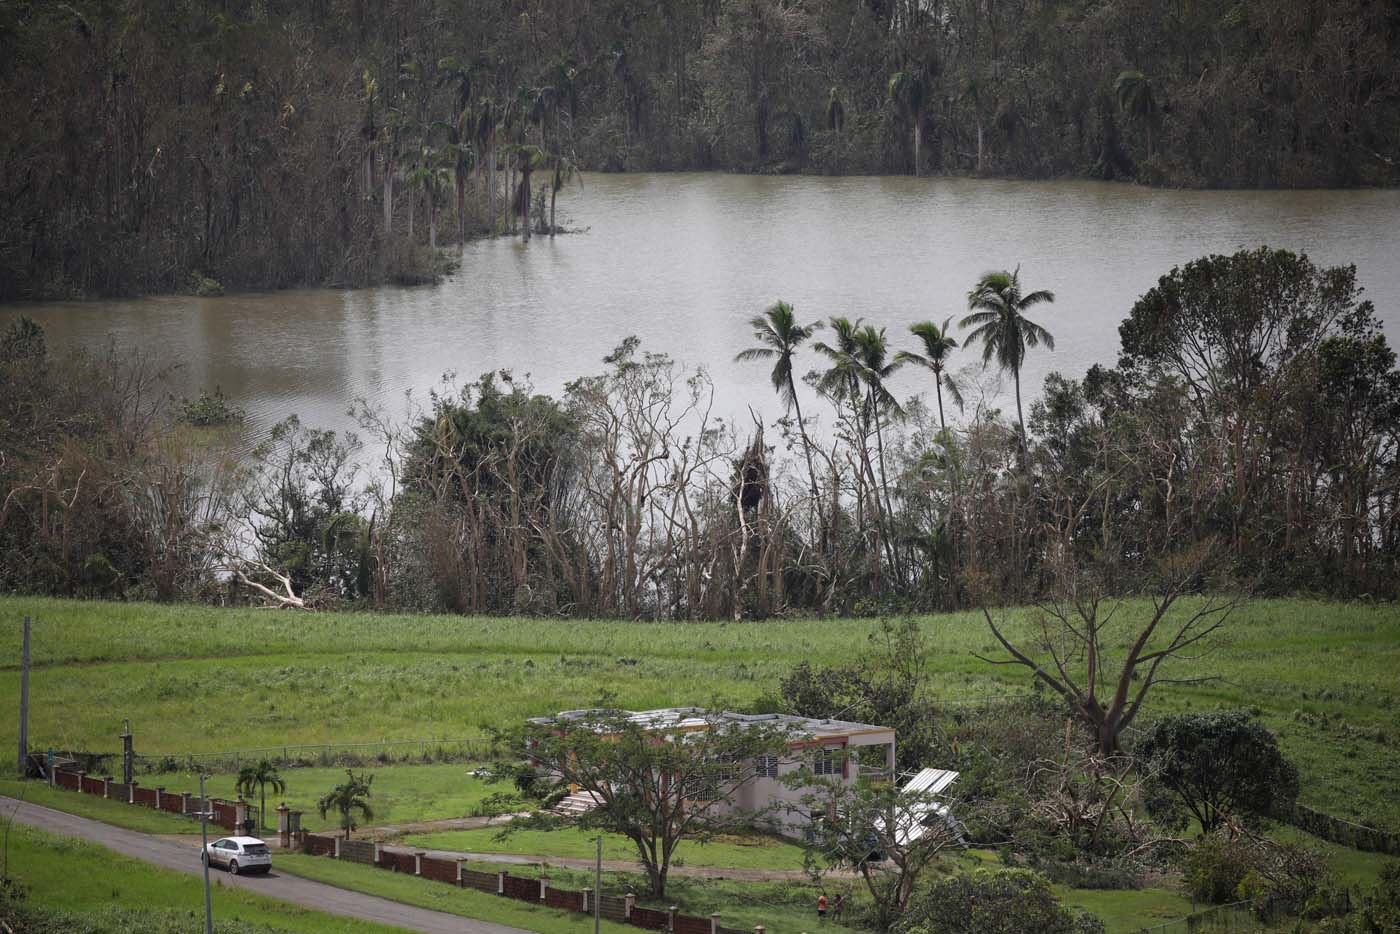 A car drives past a damaged house next to the Guajataca lake after the area was hit by Hurricane Maria in Guajataca, Puerto Rico September 23, 2017. REUTERS/Carlos Garcia Rawlins